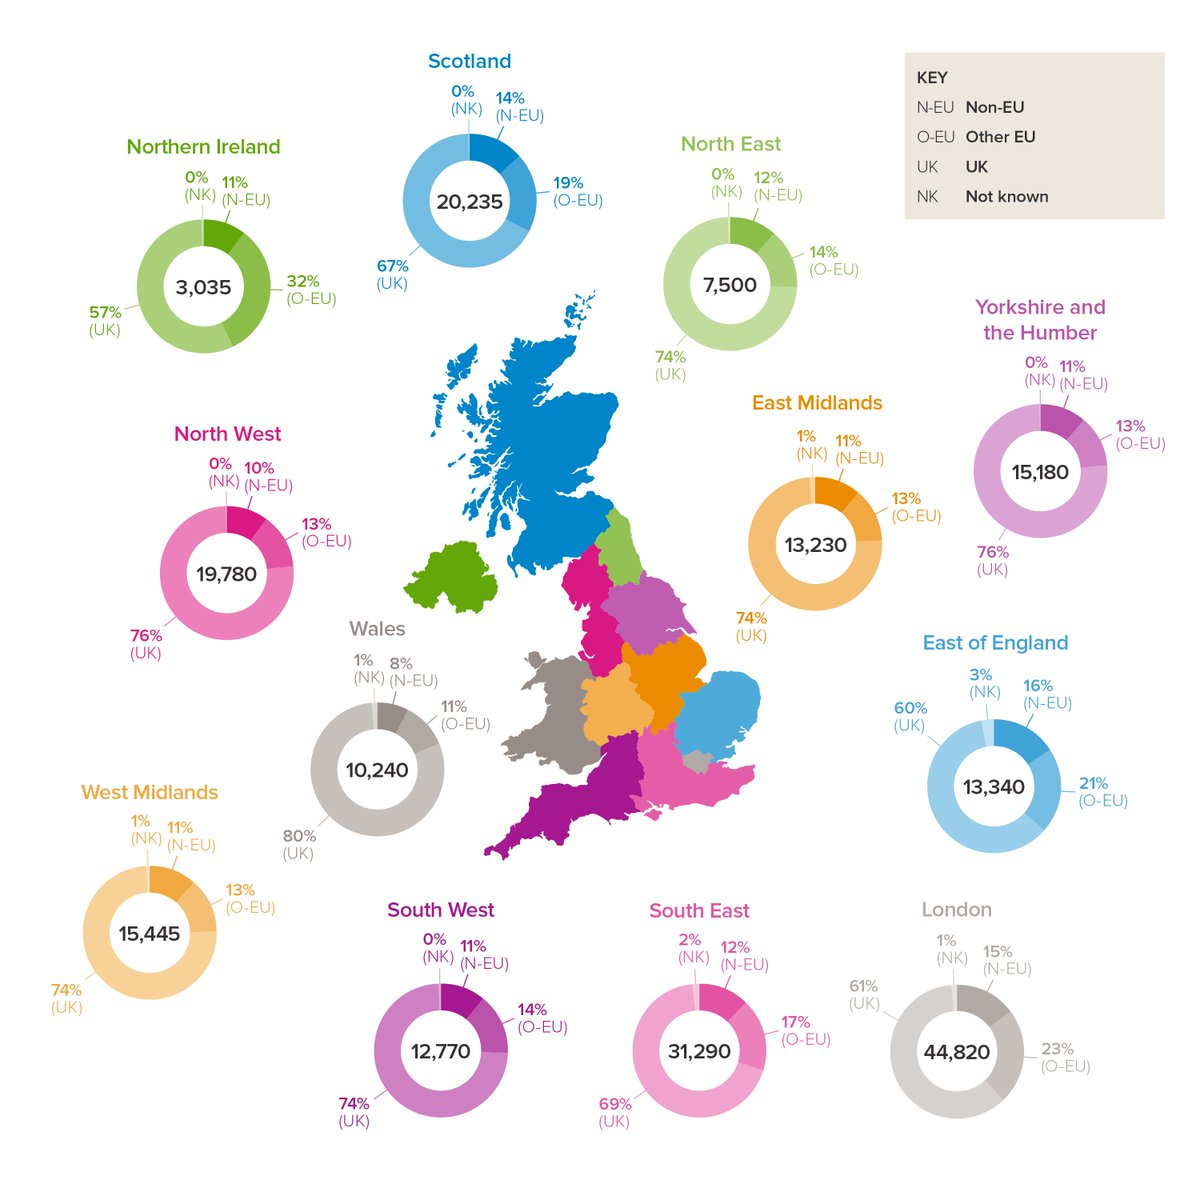 Where do academic researchers working in each UK region come from? In June of 2018, the Society published a factsheet on UK Research and the people from all across the world that drive it forward. Read the full factsheet https://t.co/jXQuluEYrM #ScienceIsGlobal